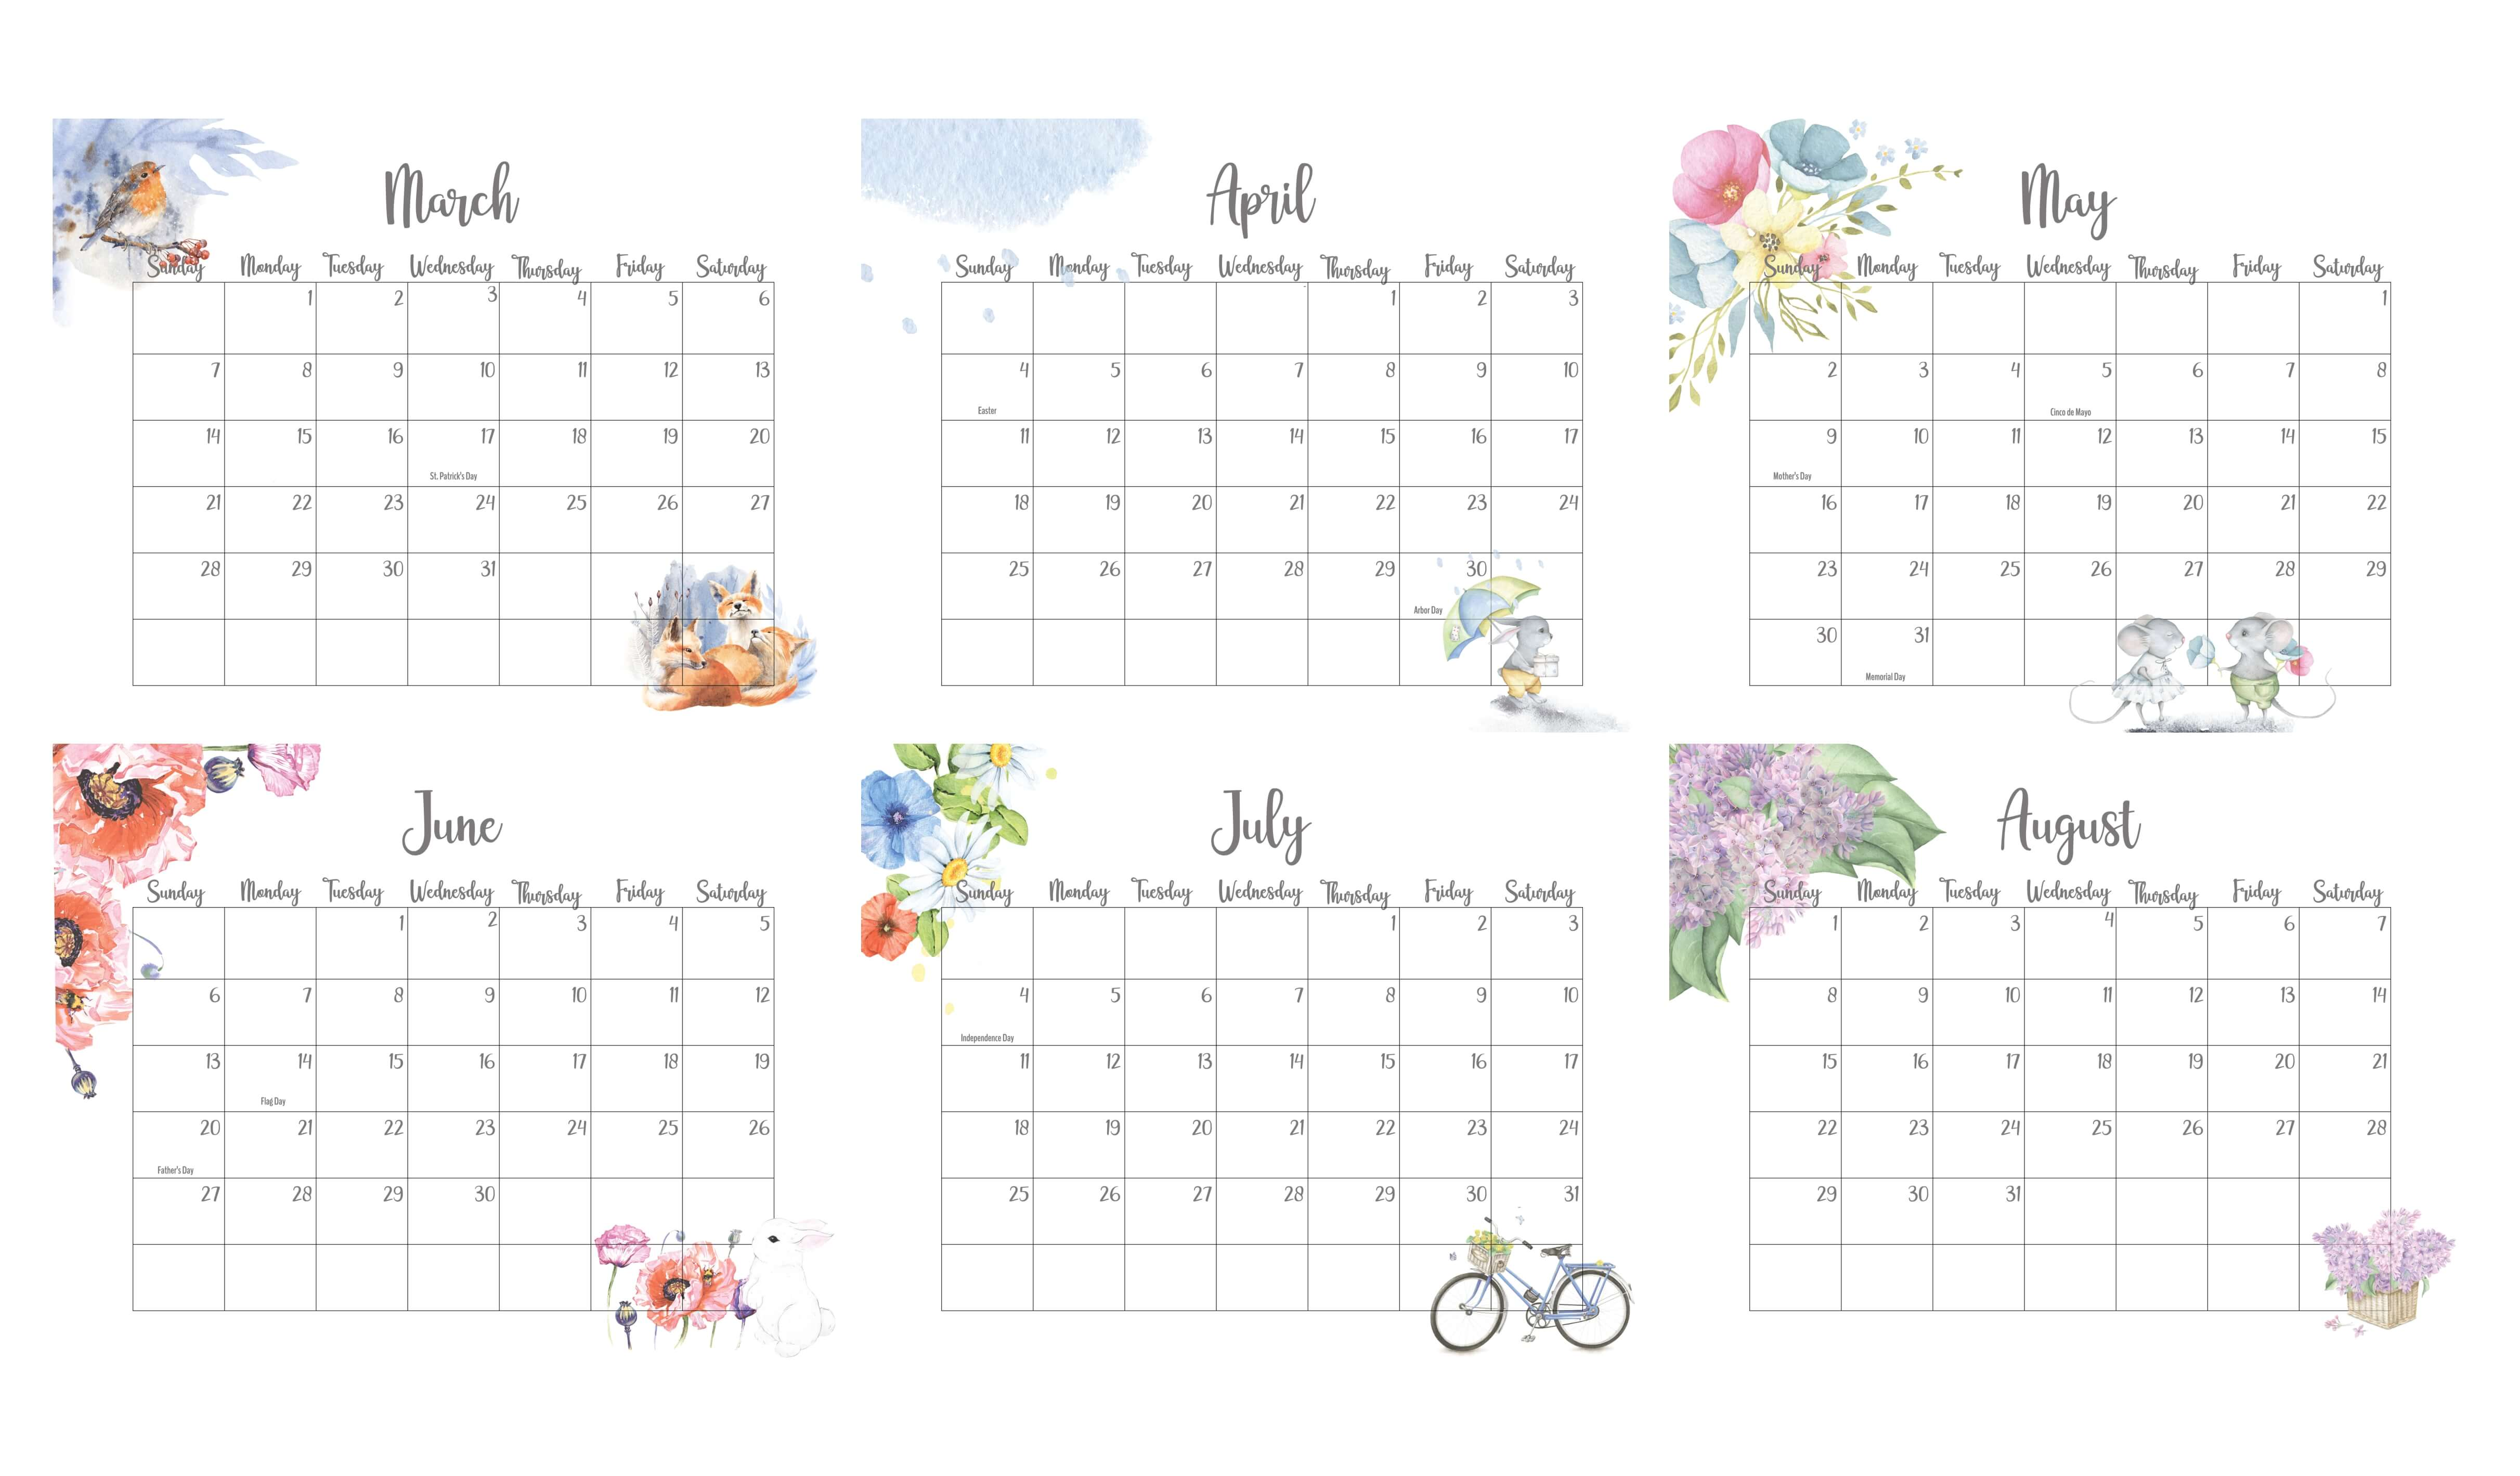 March To August 2021 Calendar With Holidays